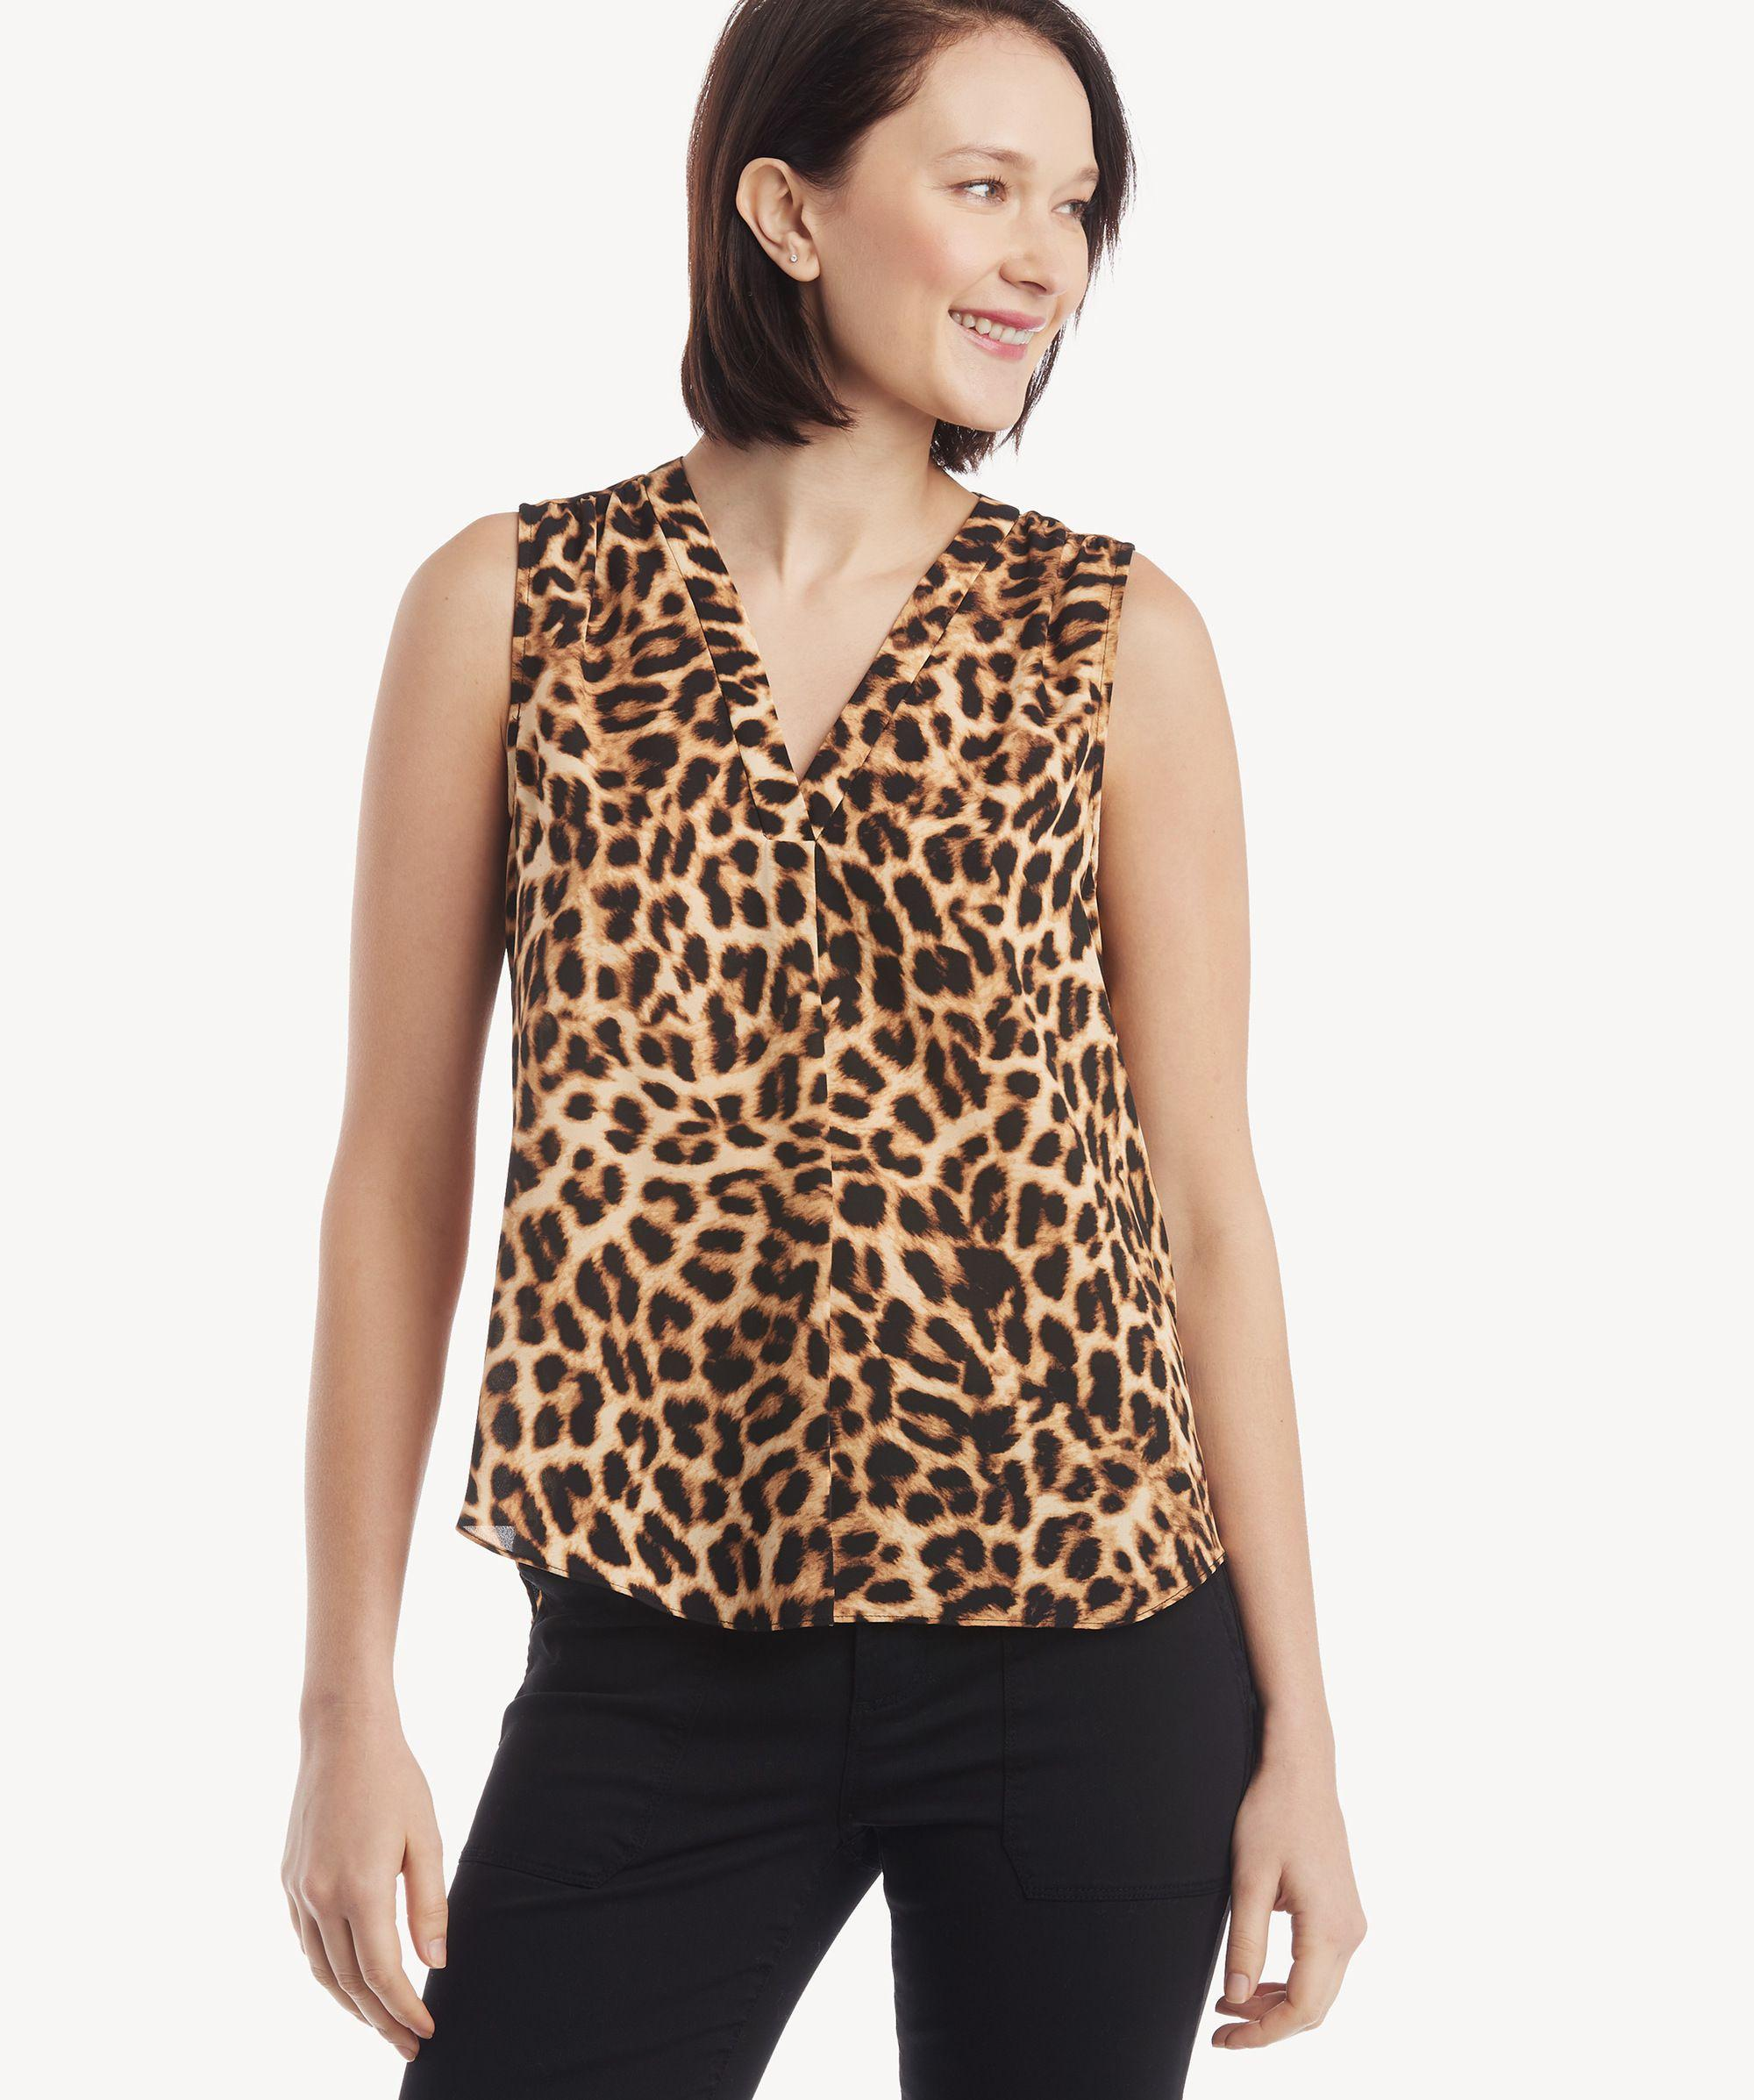 98164a3d4fc48 Lyst - Vince Camuto S l V-neck Exotic Animal Top in Black